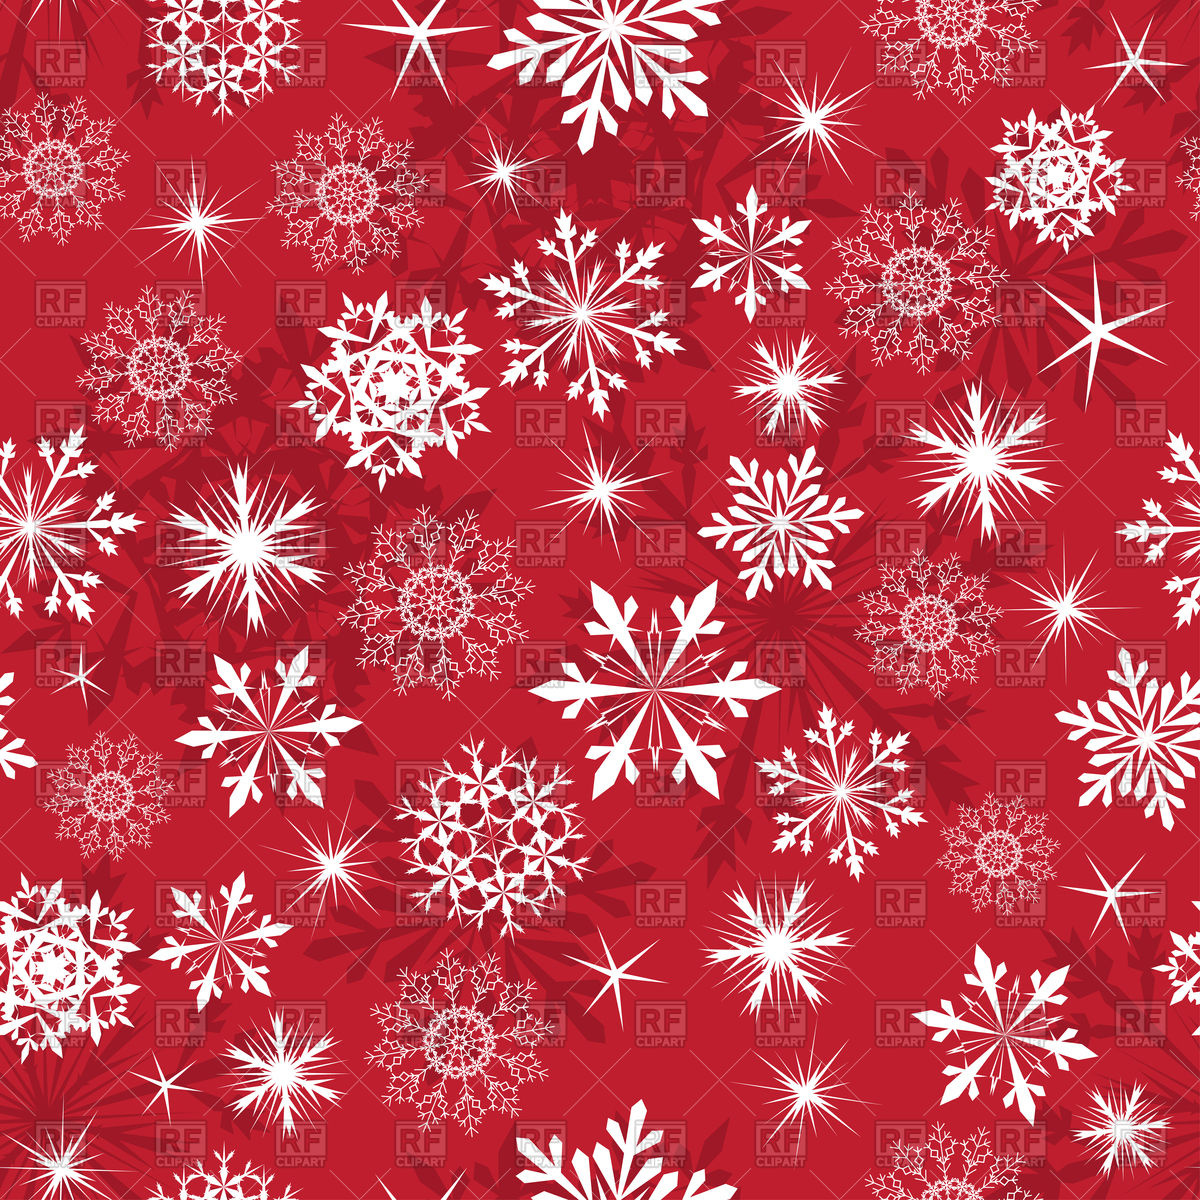 1200x1200 Seamless Red Snowflake Pattern Vector Image Vector Artwork Of